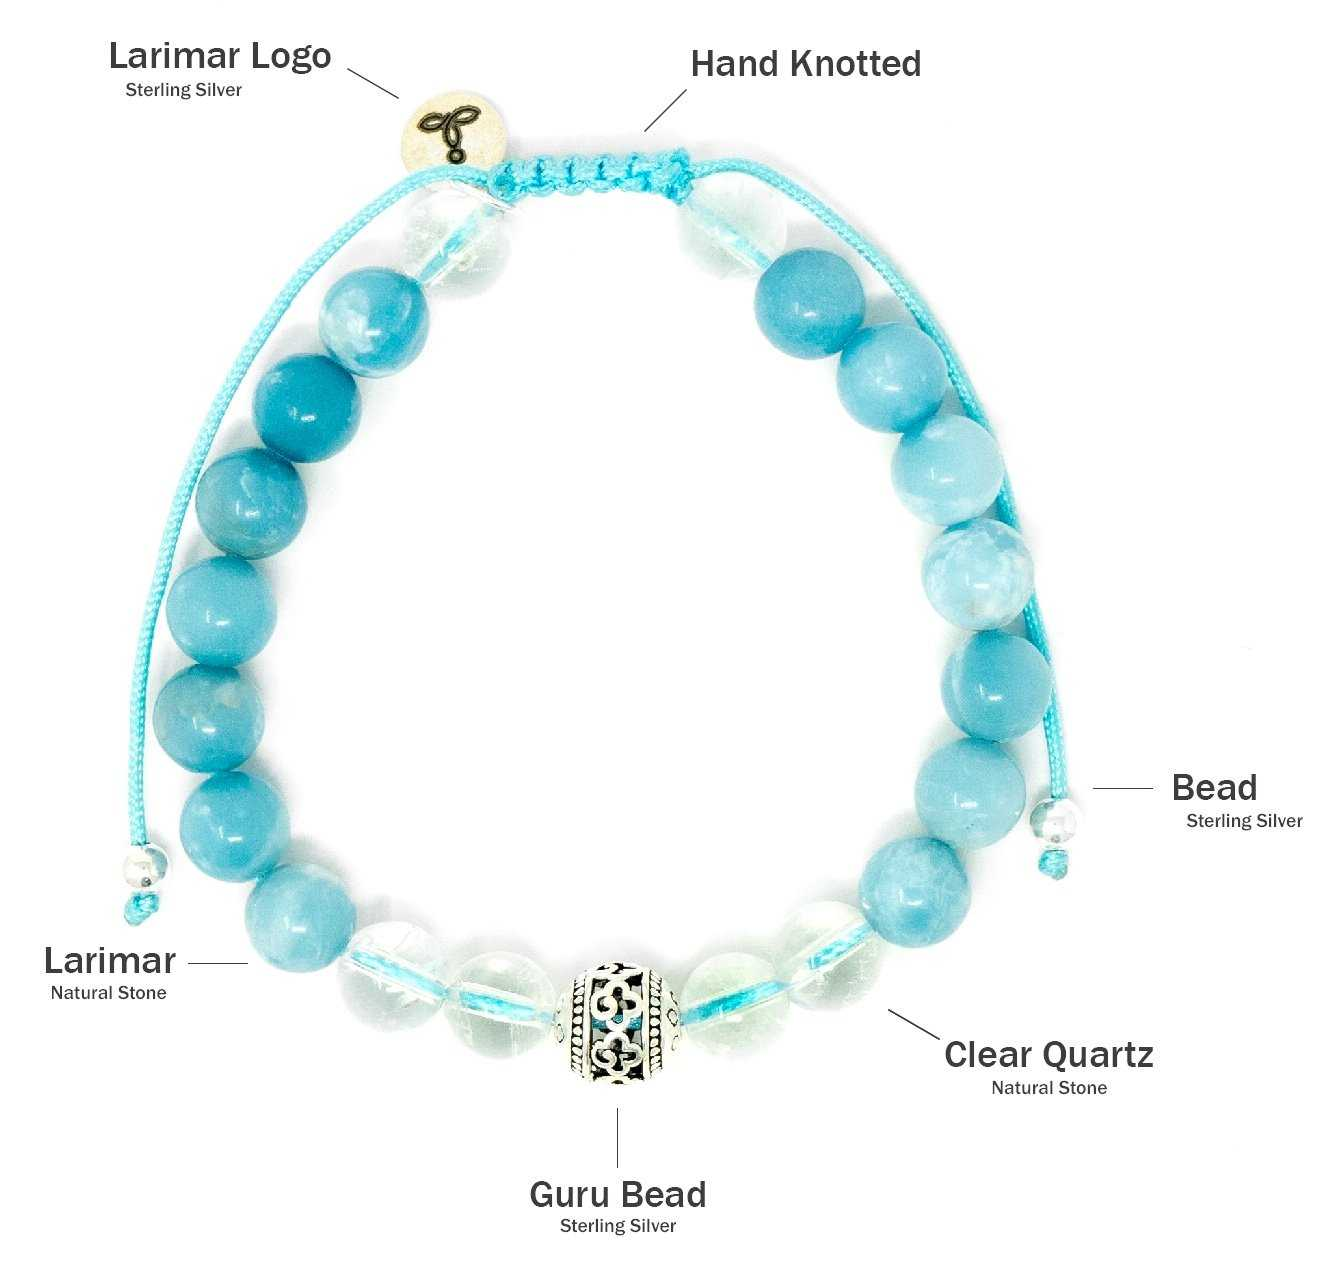 Larimar and Clear Quartz Malas Beads Bracelet